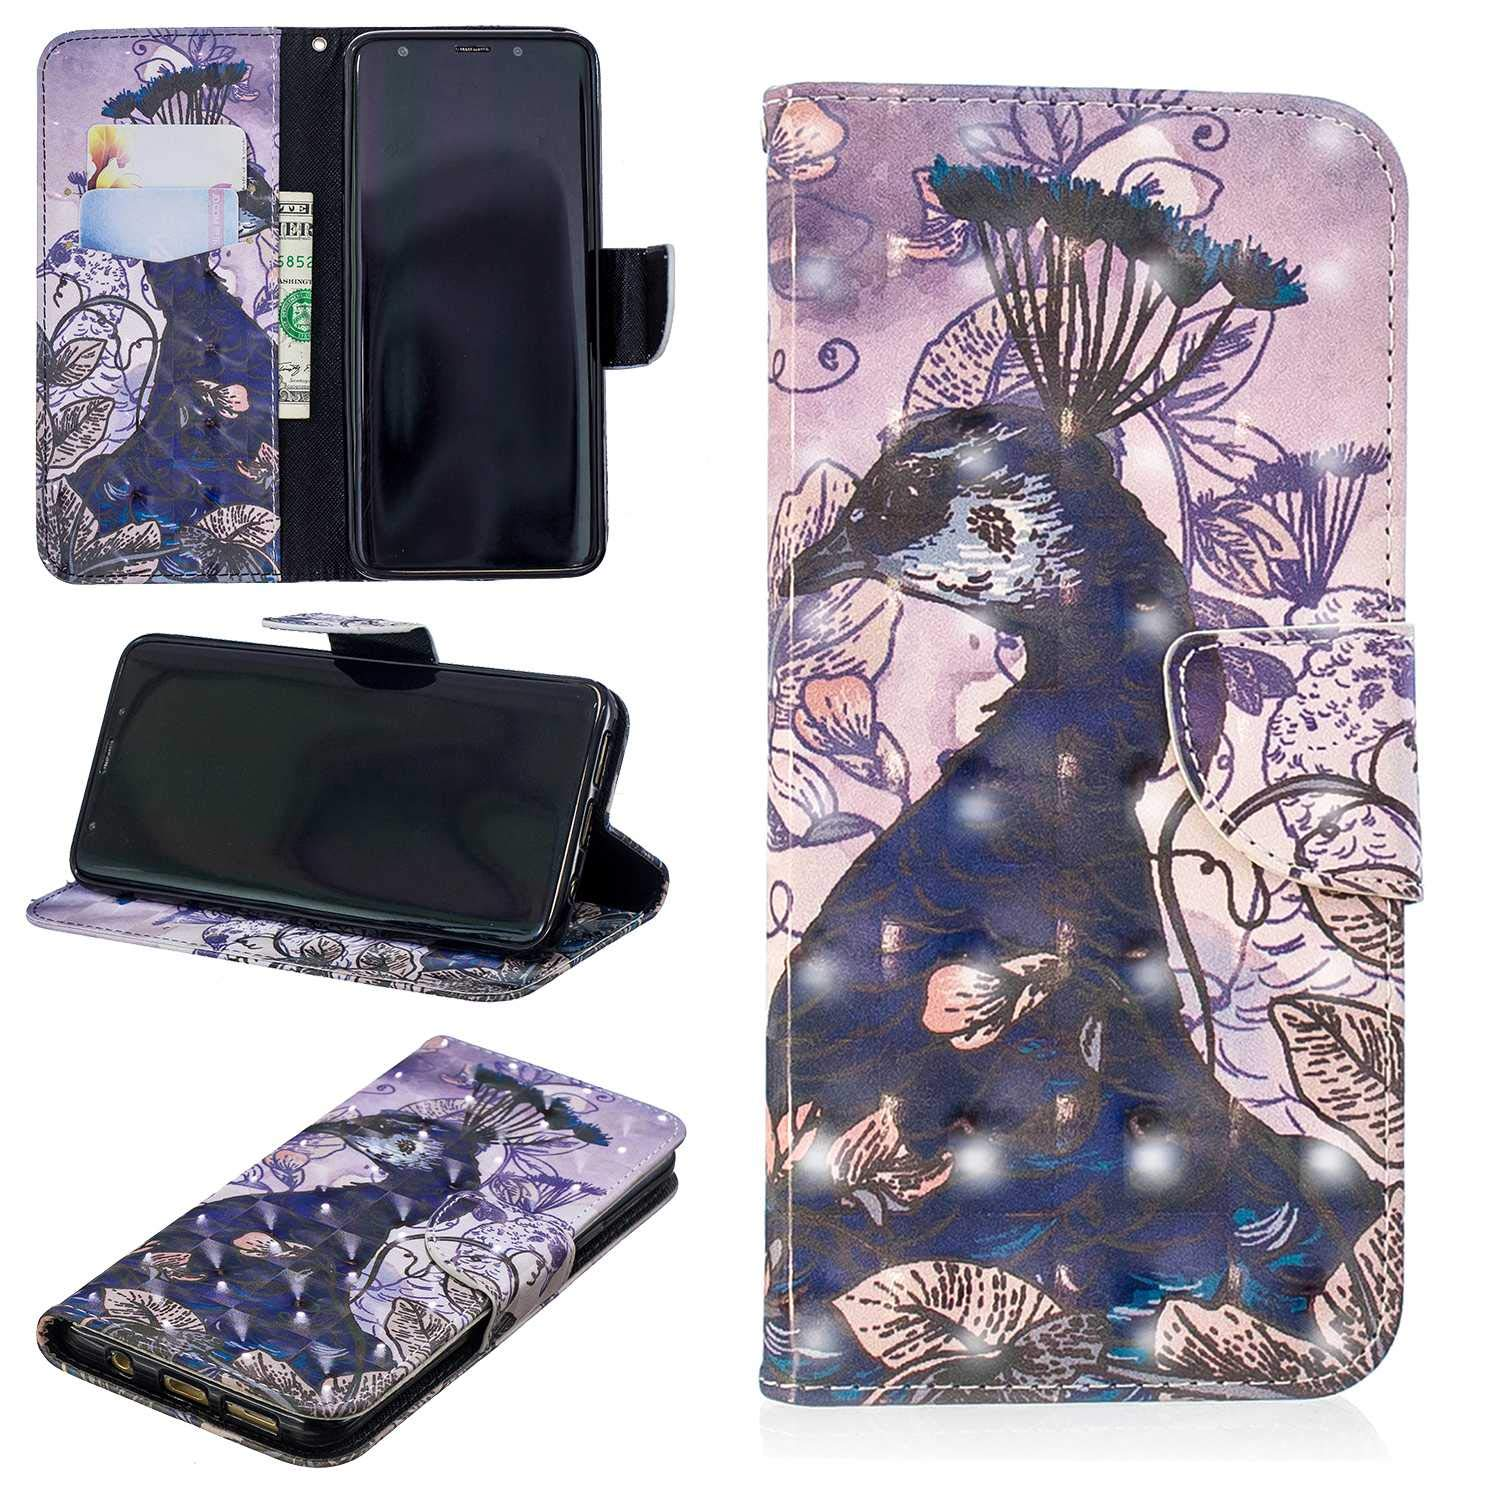 CUSKING Galaxy S9 Plus Case, Premium 3D Design Wallet Case Stand Flip Case with Card Holders and Magnetic Closure, Multi-Functional Shockproof Case for Samsung Galaxy S9 Plus - Peacock